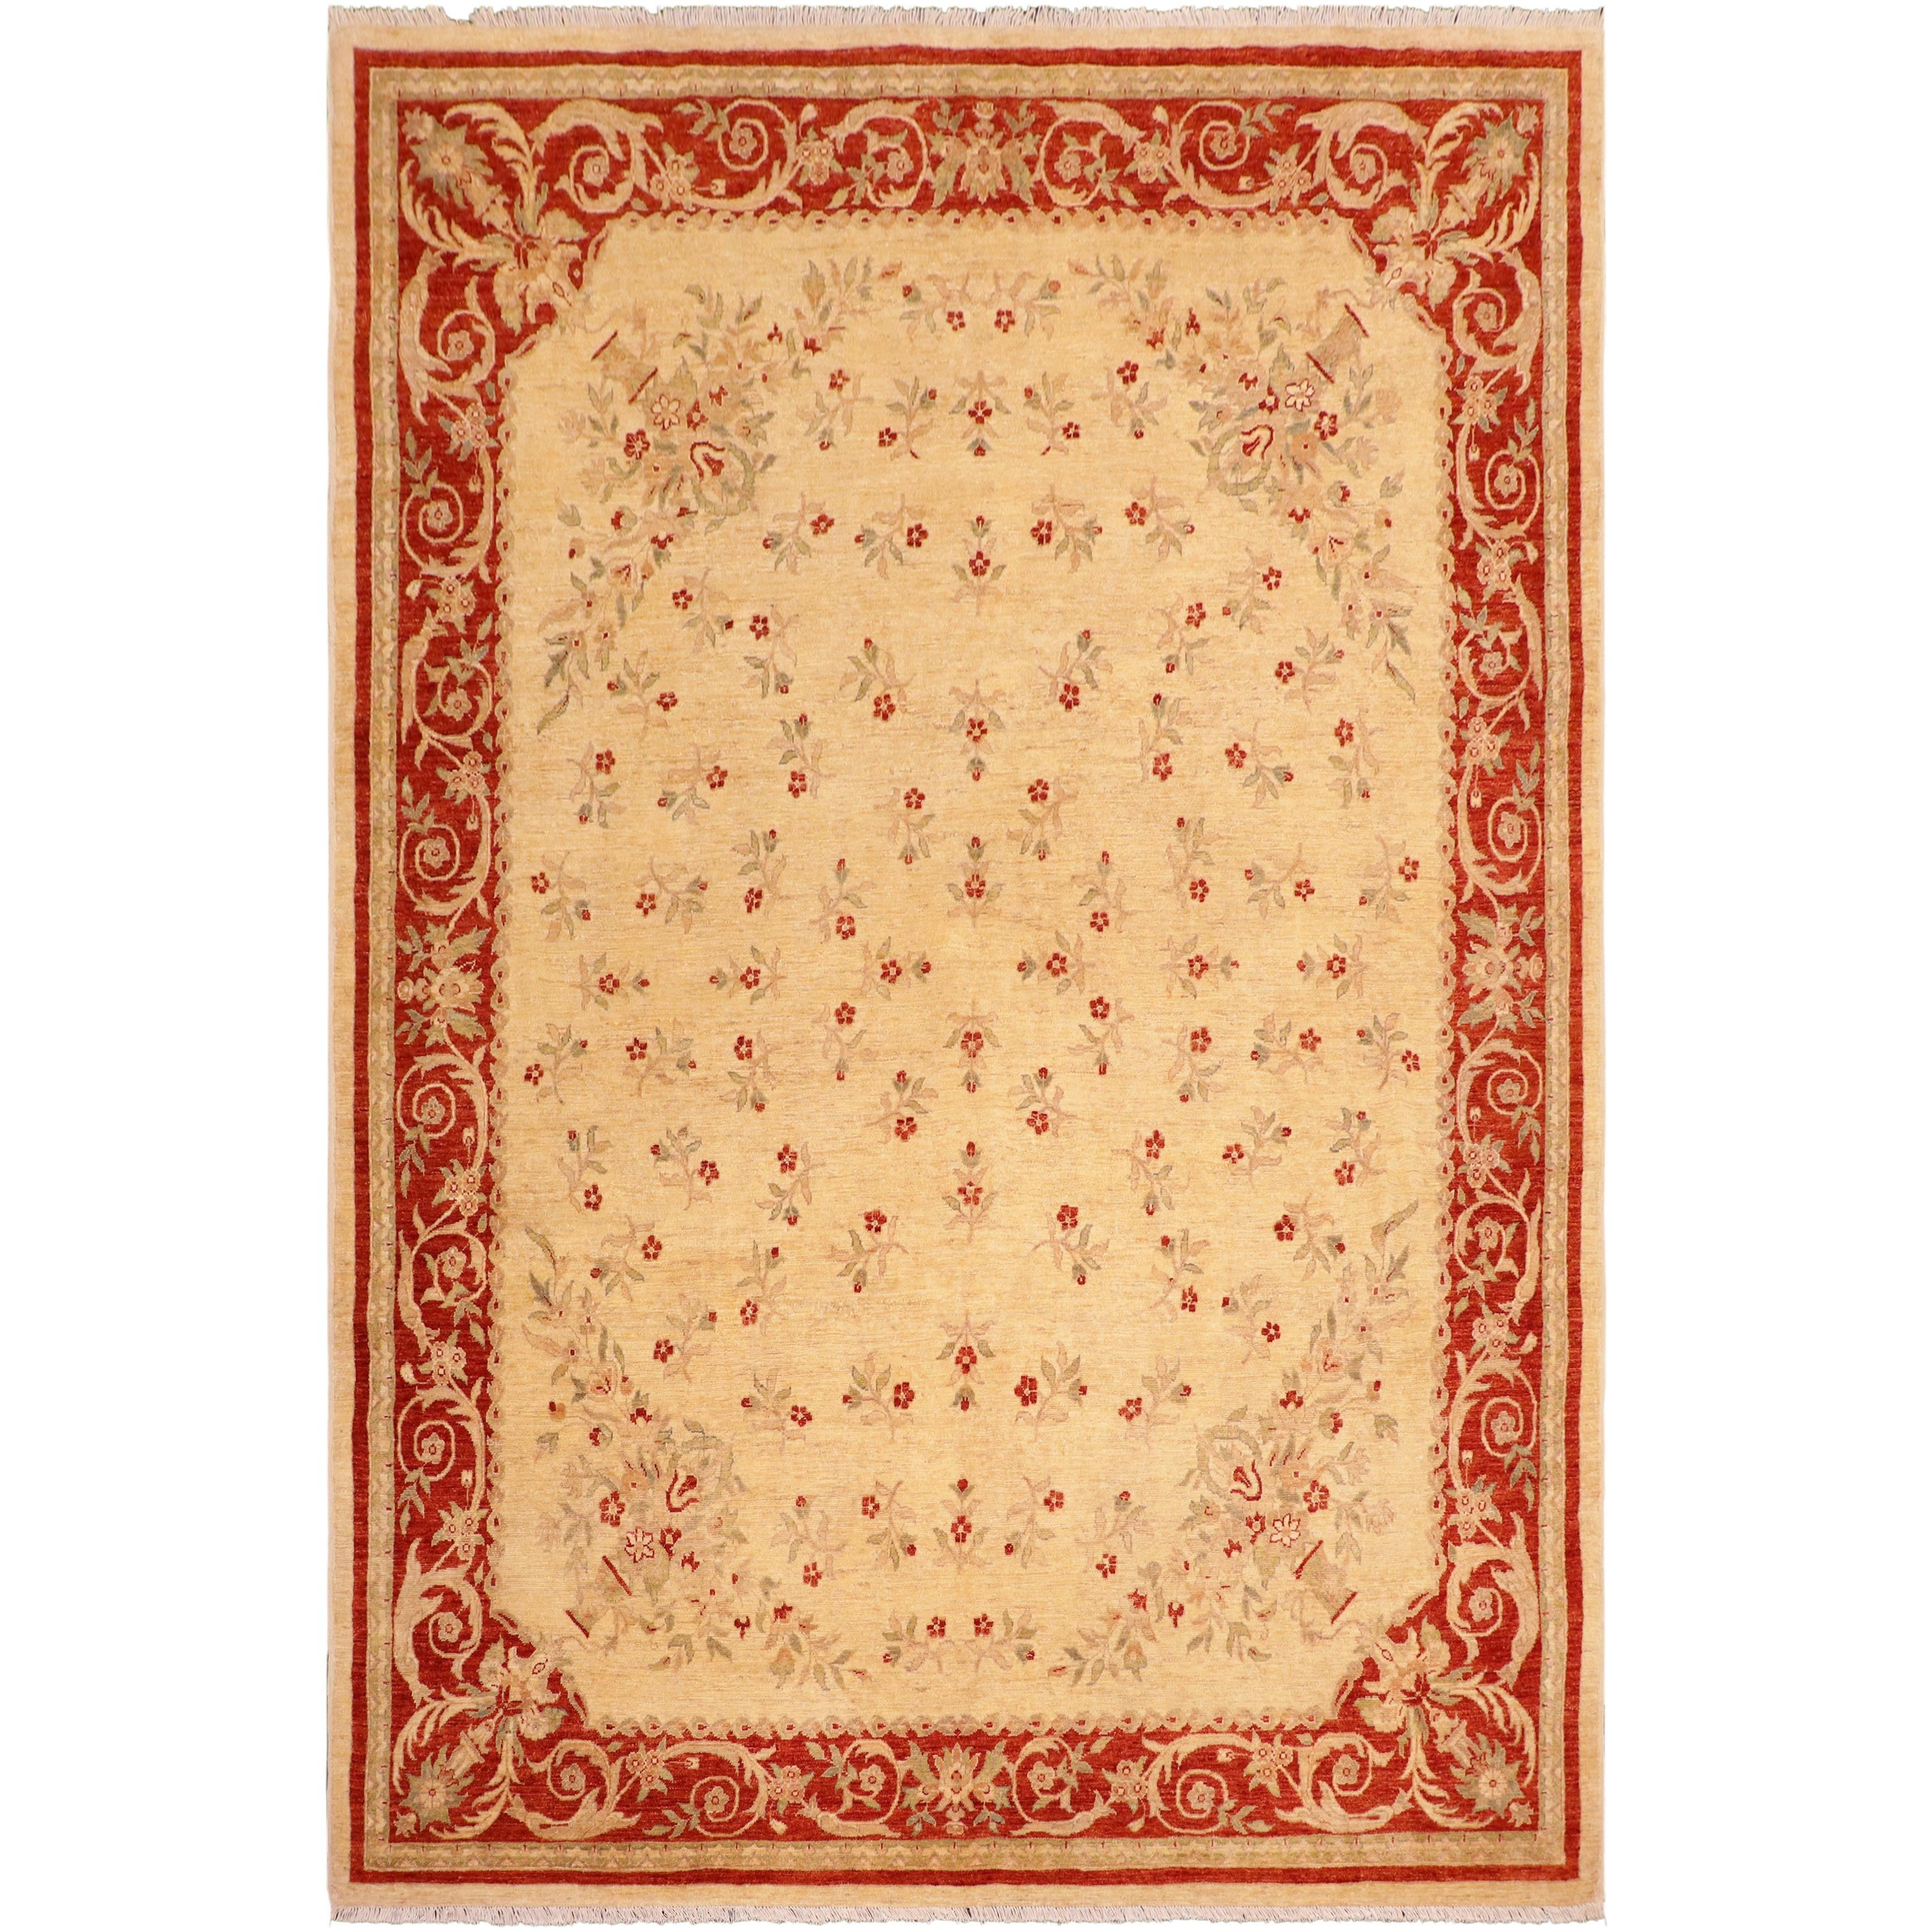 Bohemien Ziegler Christi Hand Knotted Area Rug 8 0 X 10 2 8 Ft 0 In X 10 Ft 2 In On Sale Overstock 32639802